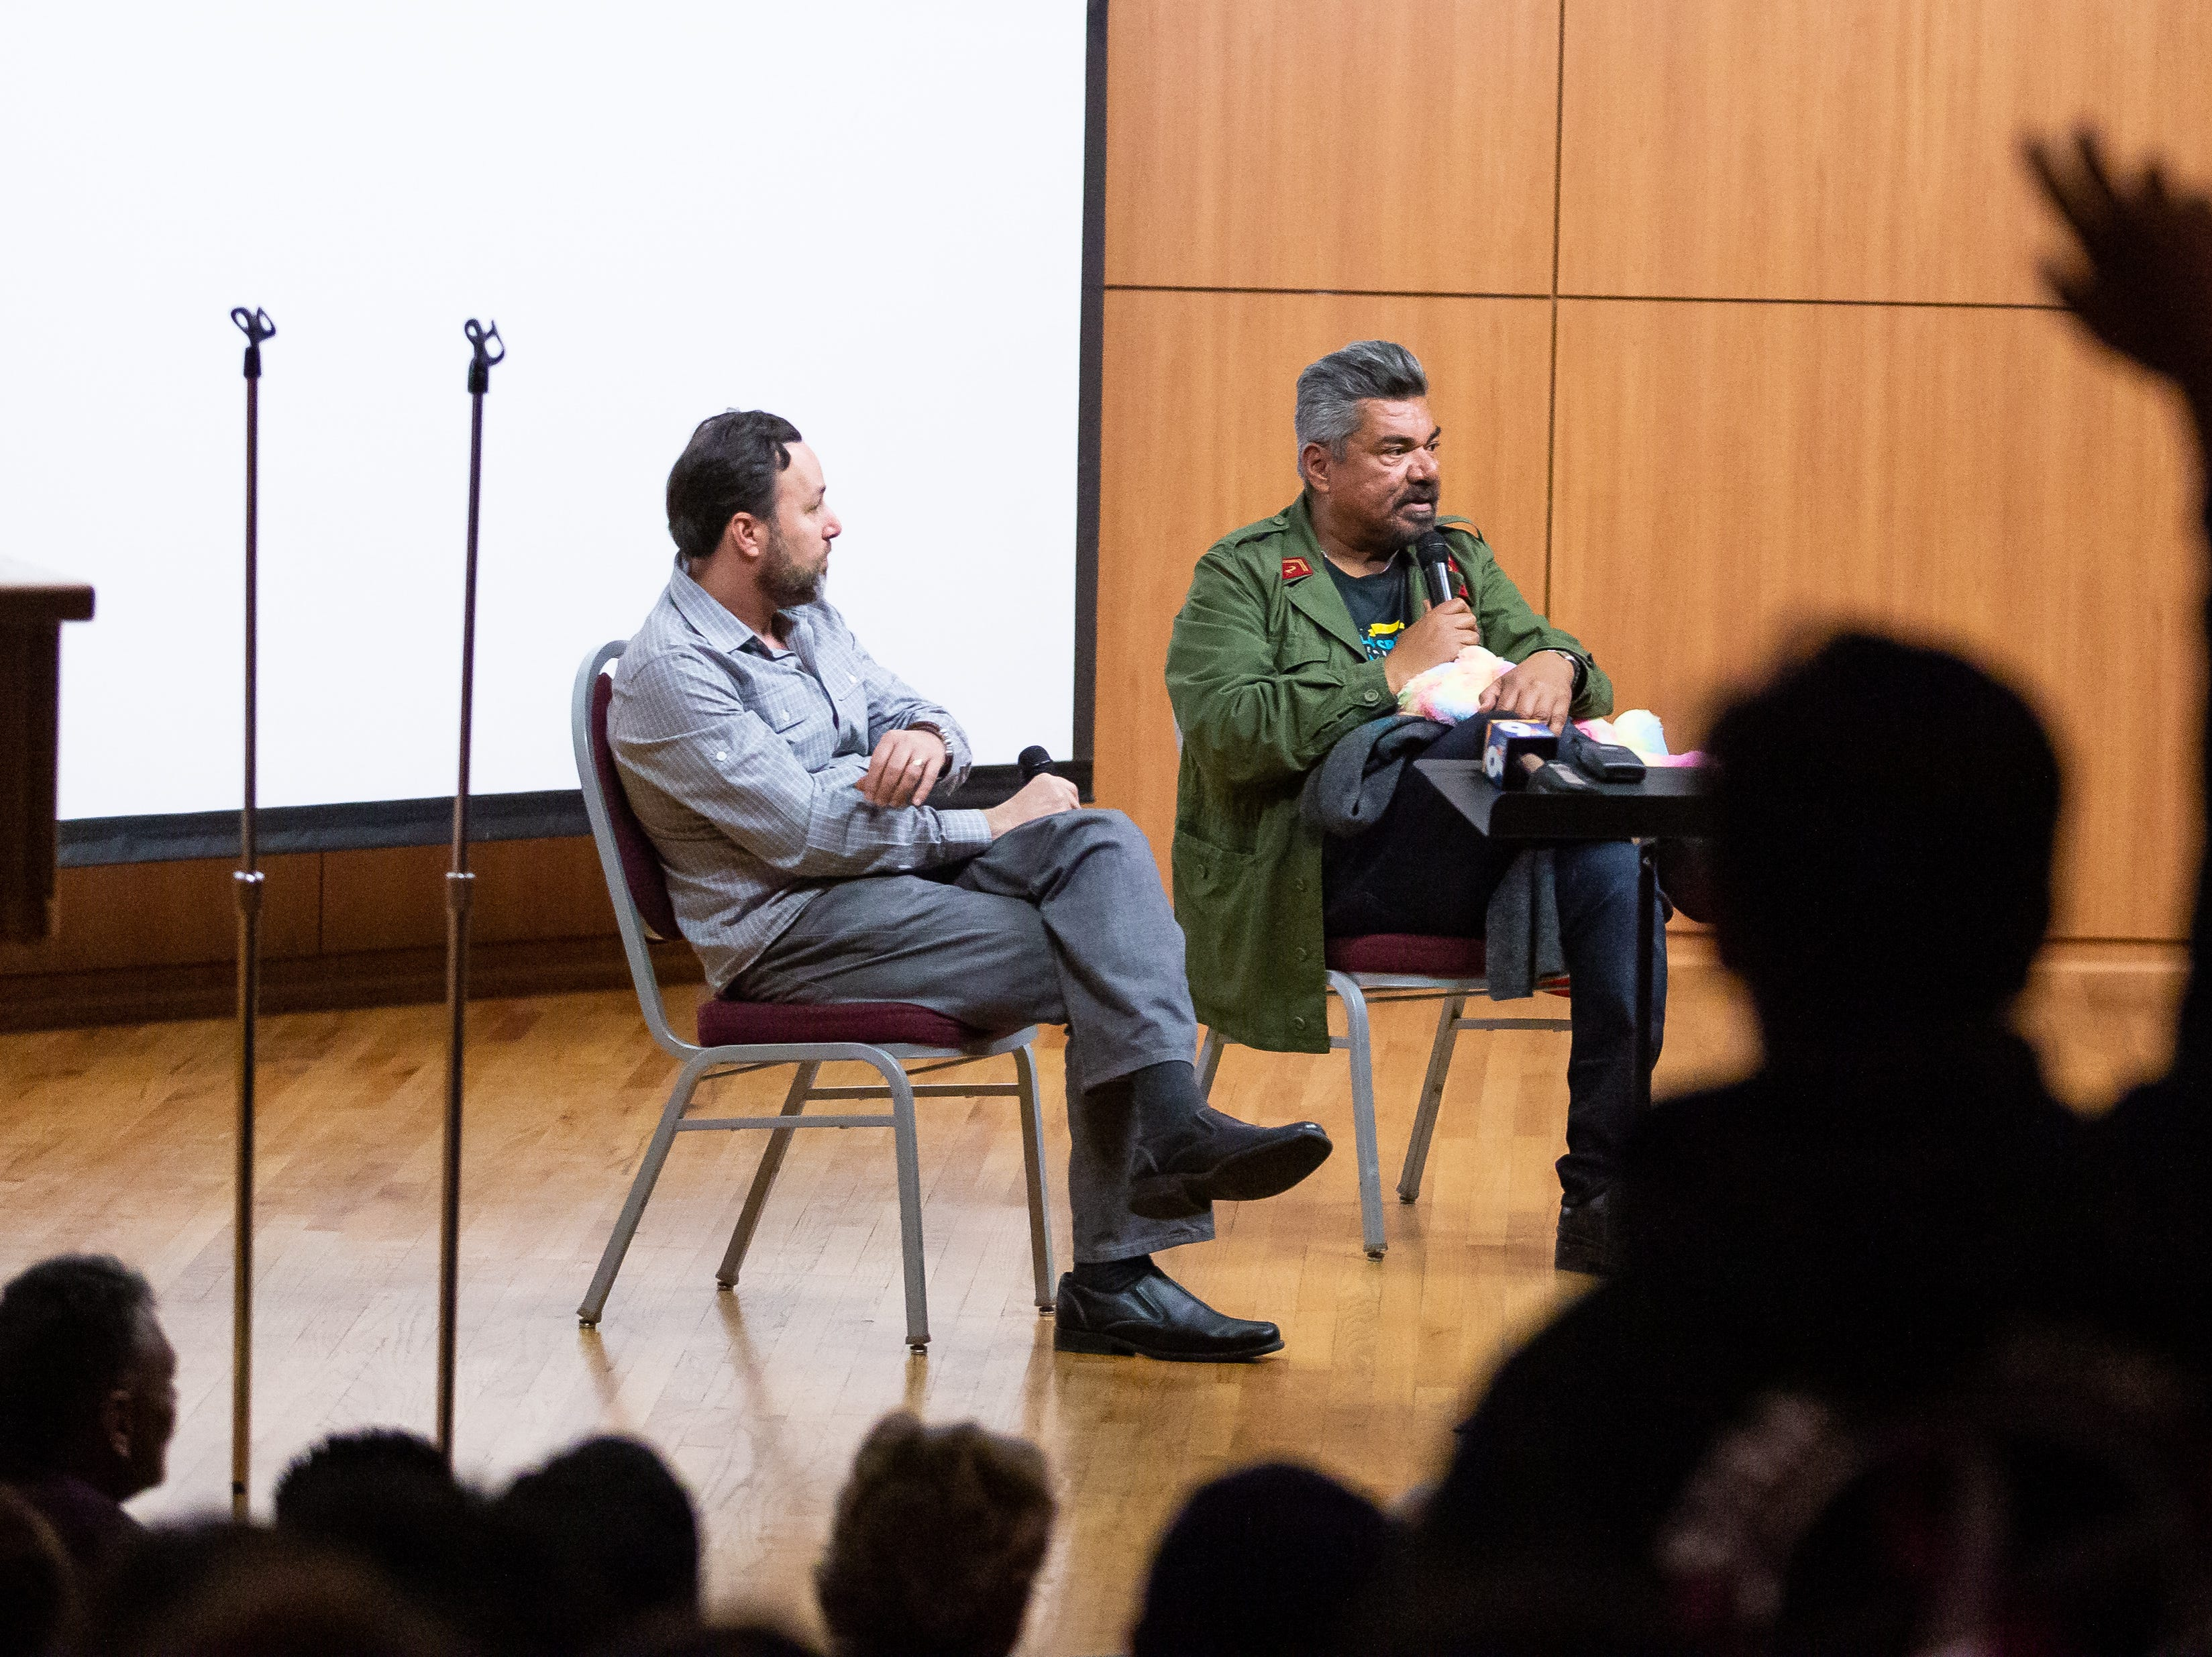 George Lopez, right, takes questions from the audience during a panel on his life and career Thursday, Feb. 21, 2019 at Corbett Center Student Union on the New Mexico State University campus. Las Cruces International Film Fest President Ross Marks appeared on stage with Lopez.